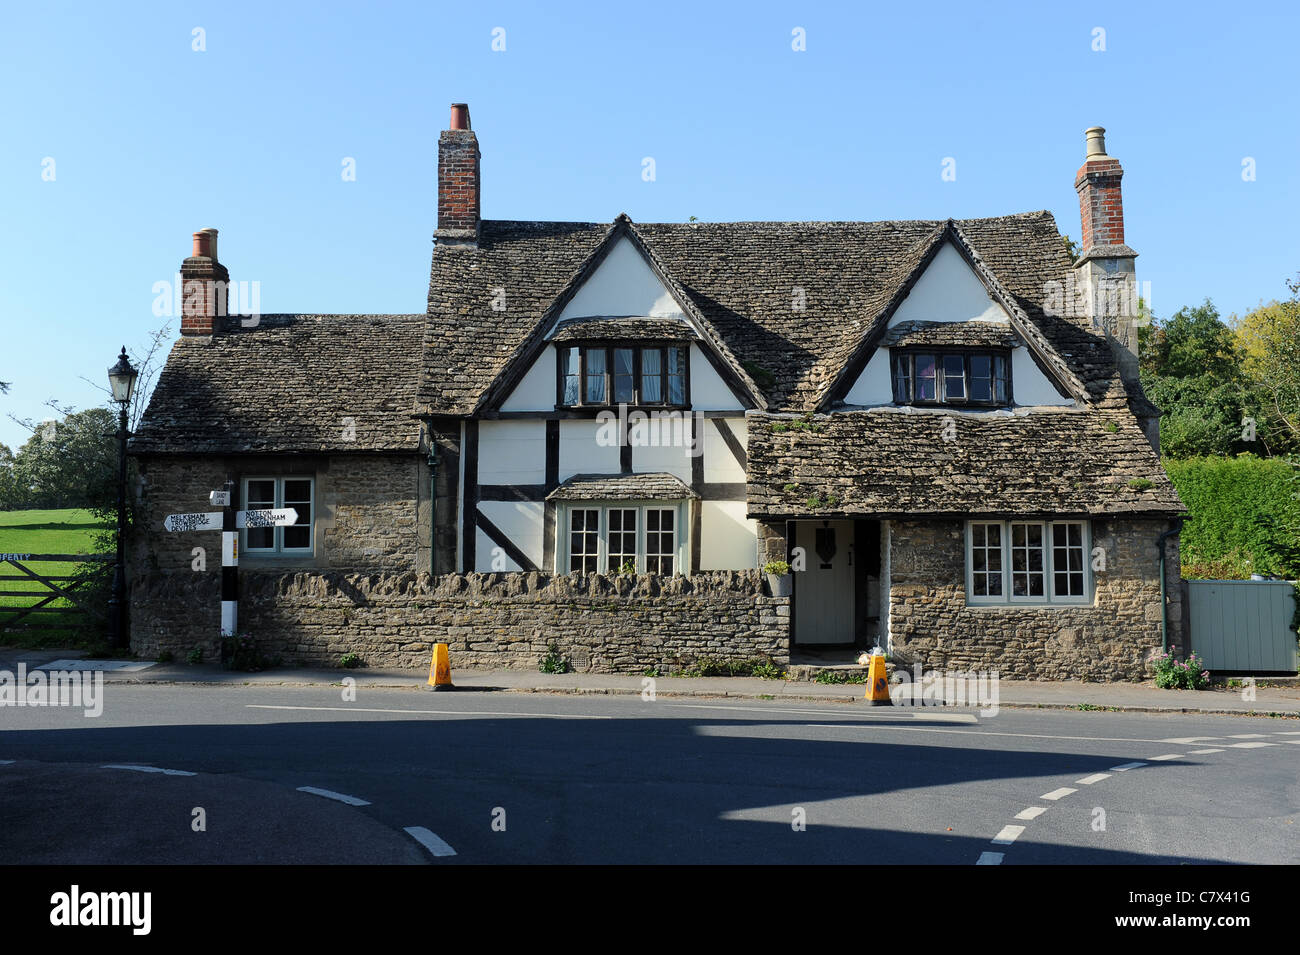 Country cottage in the Village of Lacock Wiltshire Uk - Stock Image